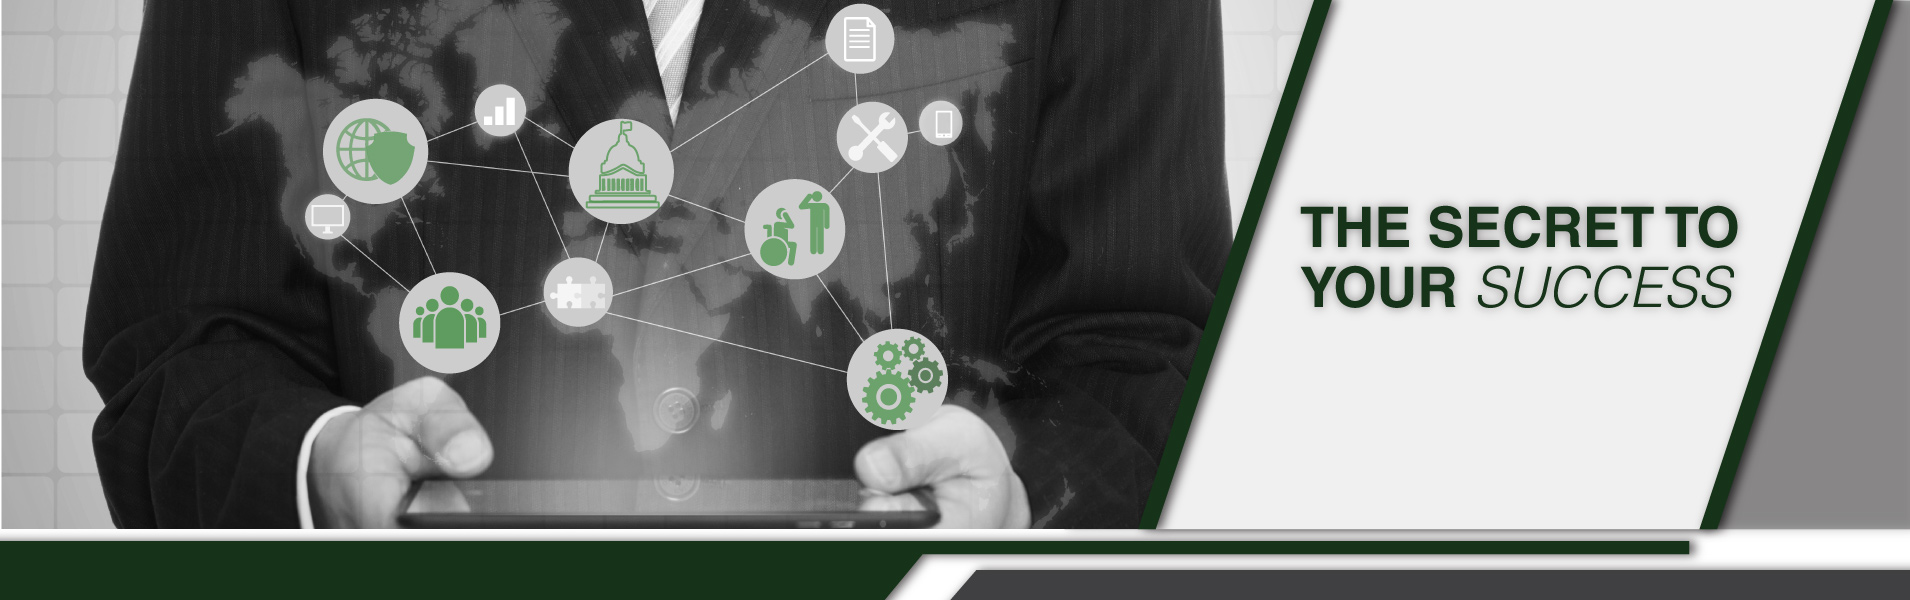 A person in a suit with an overlay of a map of the world and various green and grey icons. Text to the right reads The Secret to Your Success.